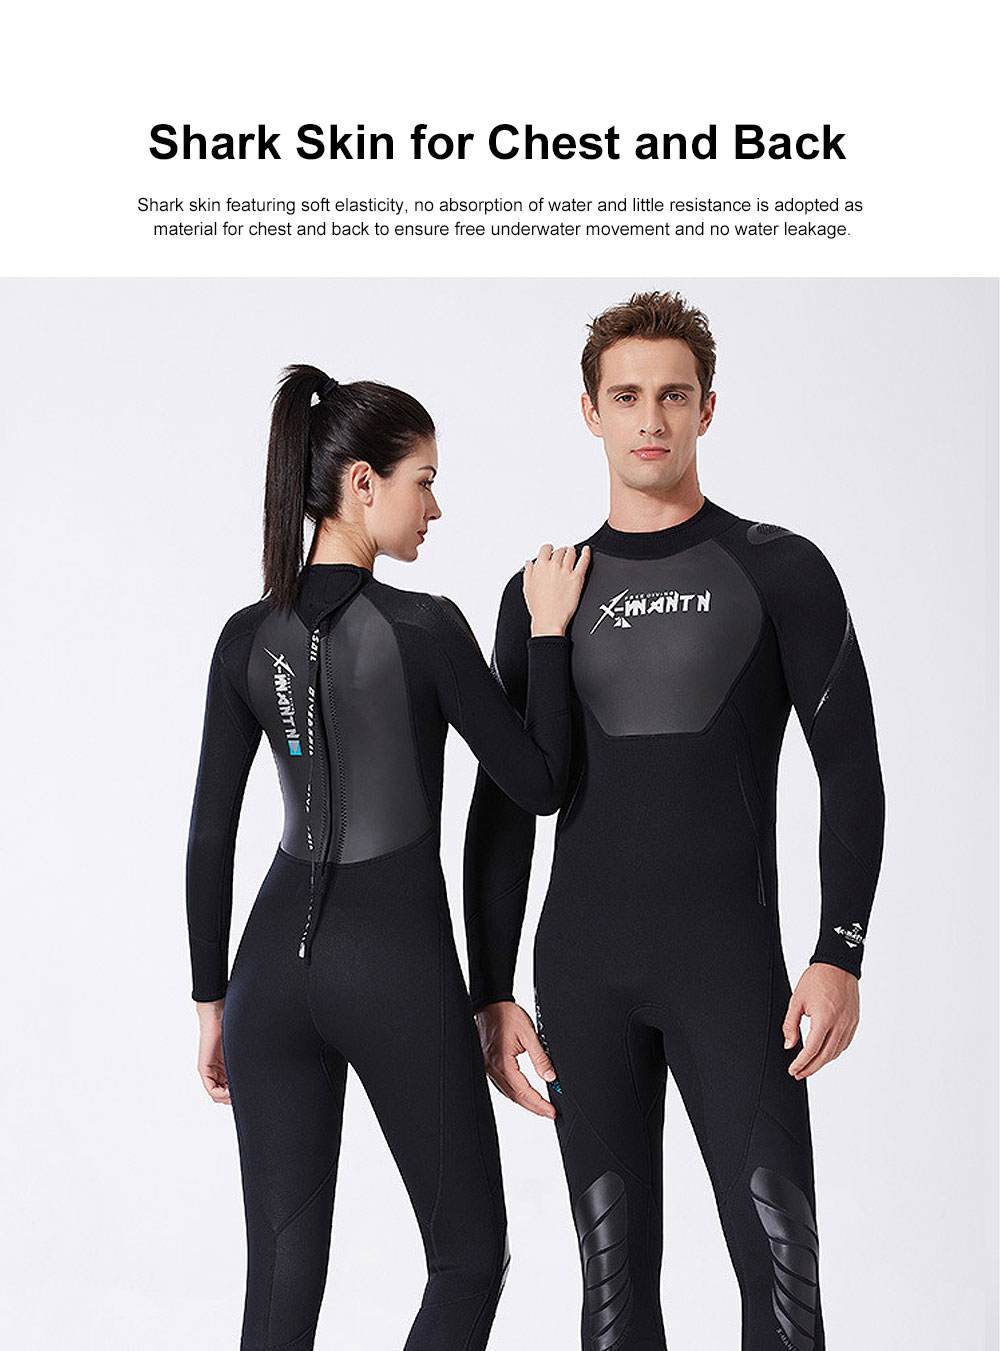 UV Protection Unisex Diving Dress, One-piece Warm-kept Diving Suit, Long Sleeve Swimwear for Snorkeling, Diving Winter Swimsuit 2019 3